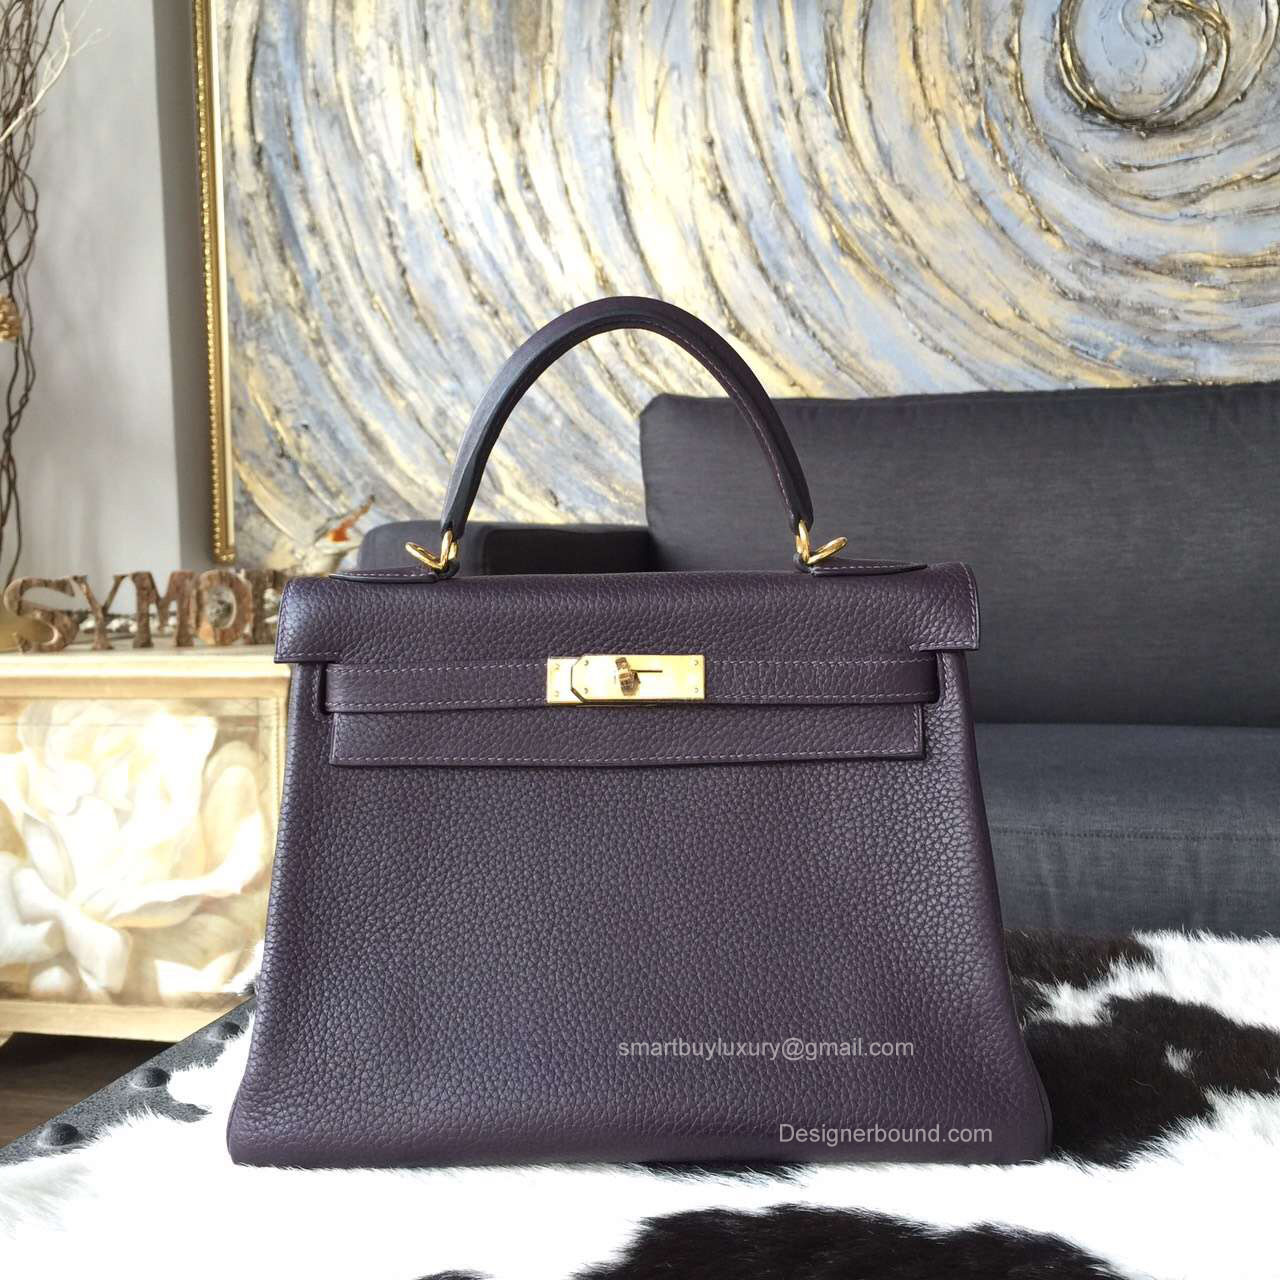 Hermes Kelly 32 Bag Raisin ck59 Togo Leather Handstitched Gold hw -